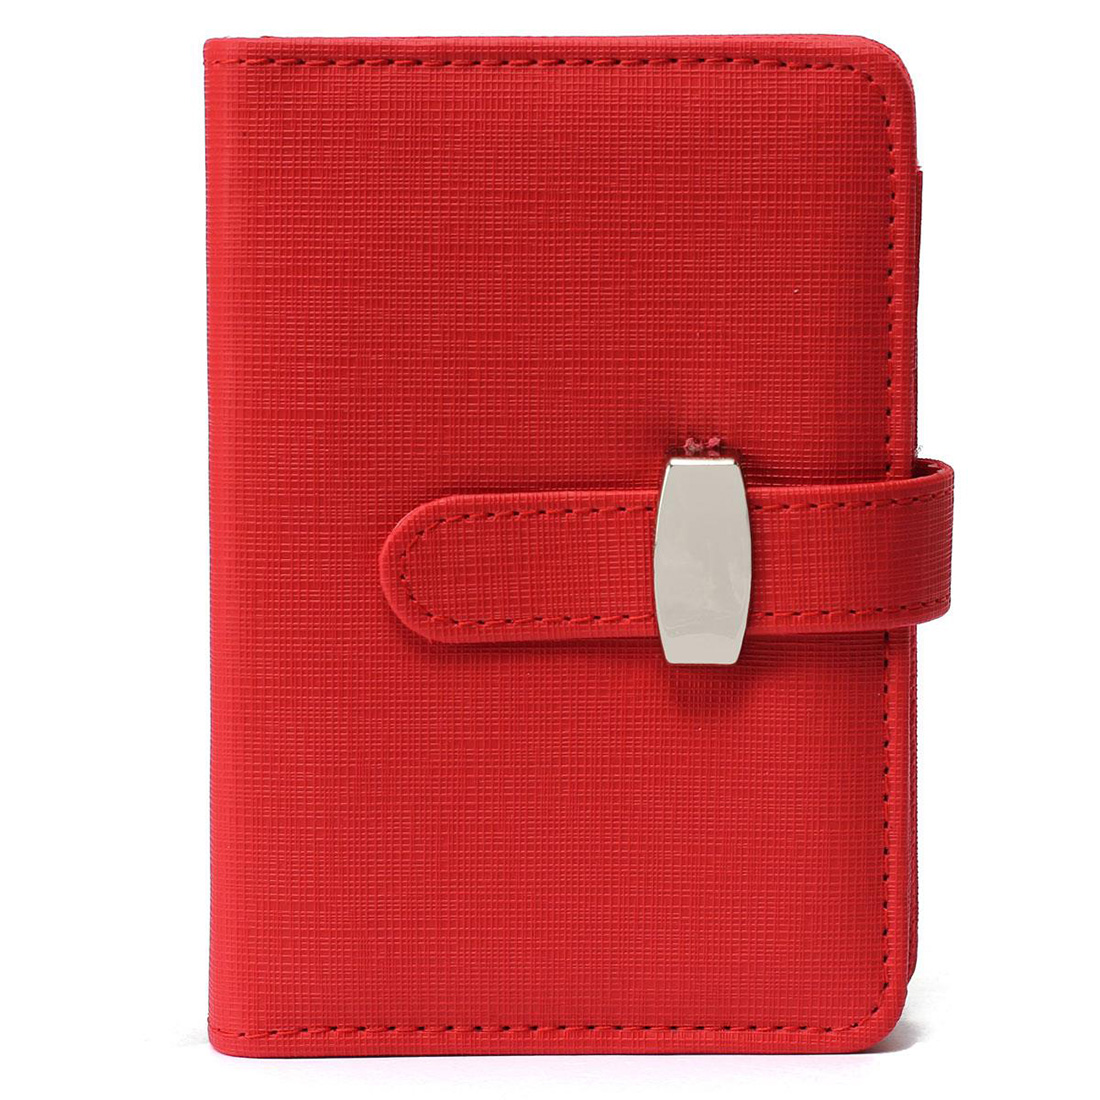 BLEL Modern Design A7 Personal Organiser Planner PU Leather Cover Diary Notebook School Office Stationery (Red)